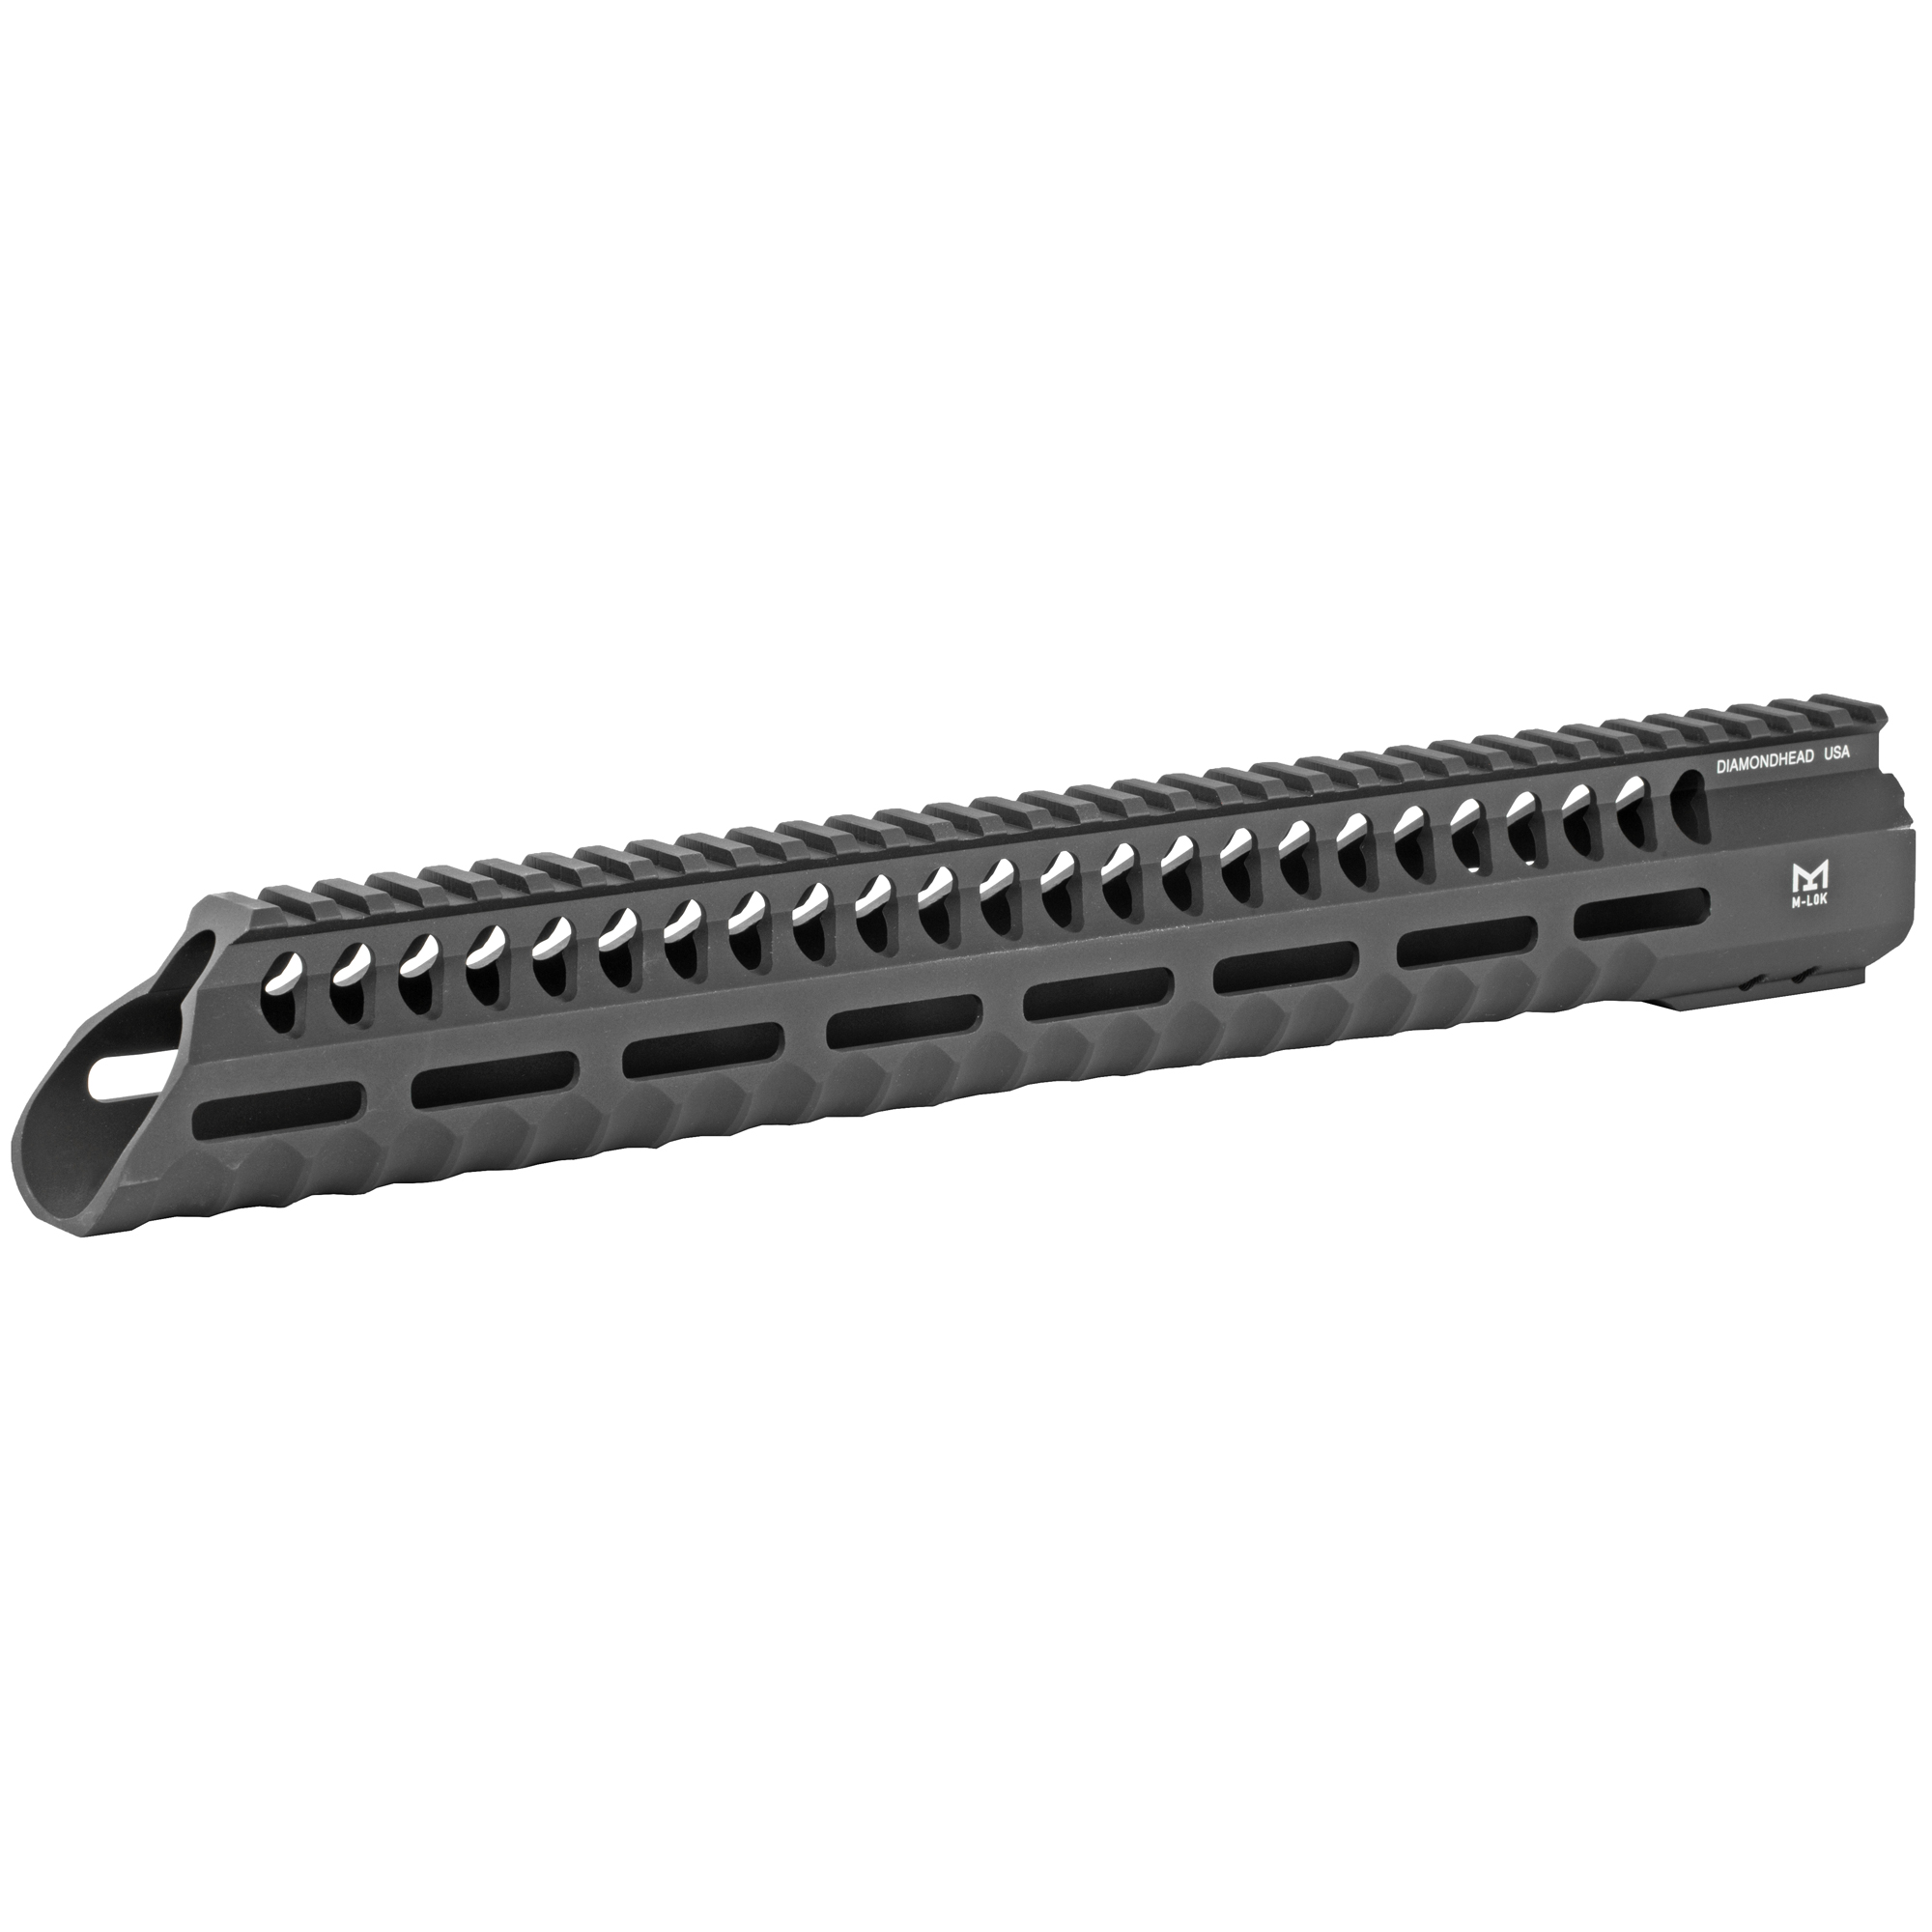 """The Diamondhead Versa-Rail System VRS T-556 Free Floating Handguard is an innovative forend design that offers an uninterrupted rail extension in perfect alignment with your firearm's flat top receiver. The VRS Free Floating Handguard provides excellent simplicity"""" lighting fast configuration changes and ease of use. M-LOK compatible on the sides and bottom"""" you can attach any M-LOK accessory or M-LOK add-on rails at any position you wish. Installation will require replacing your existing barrel nut which is included."""